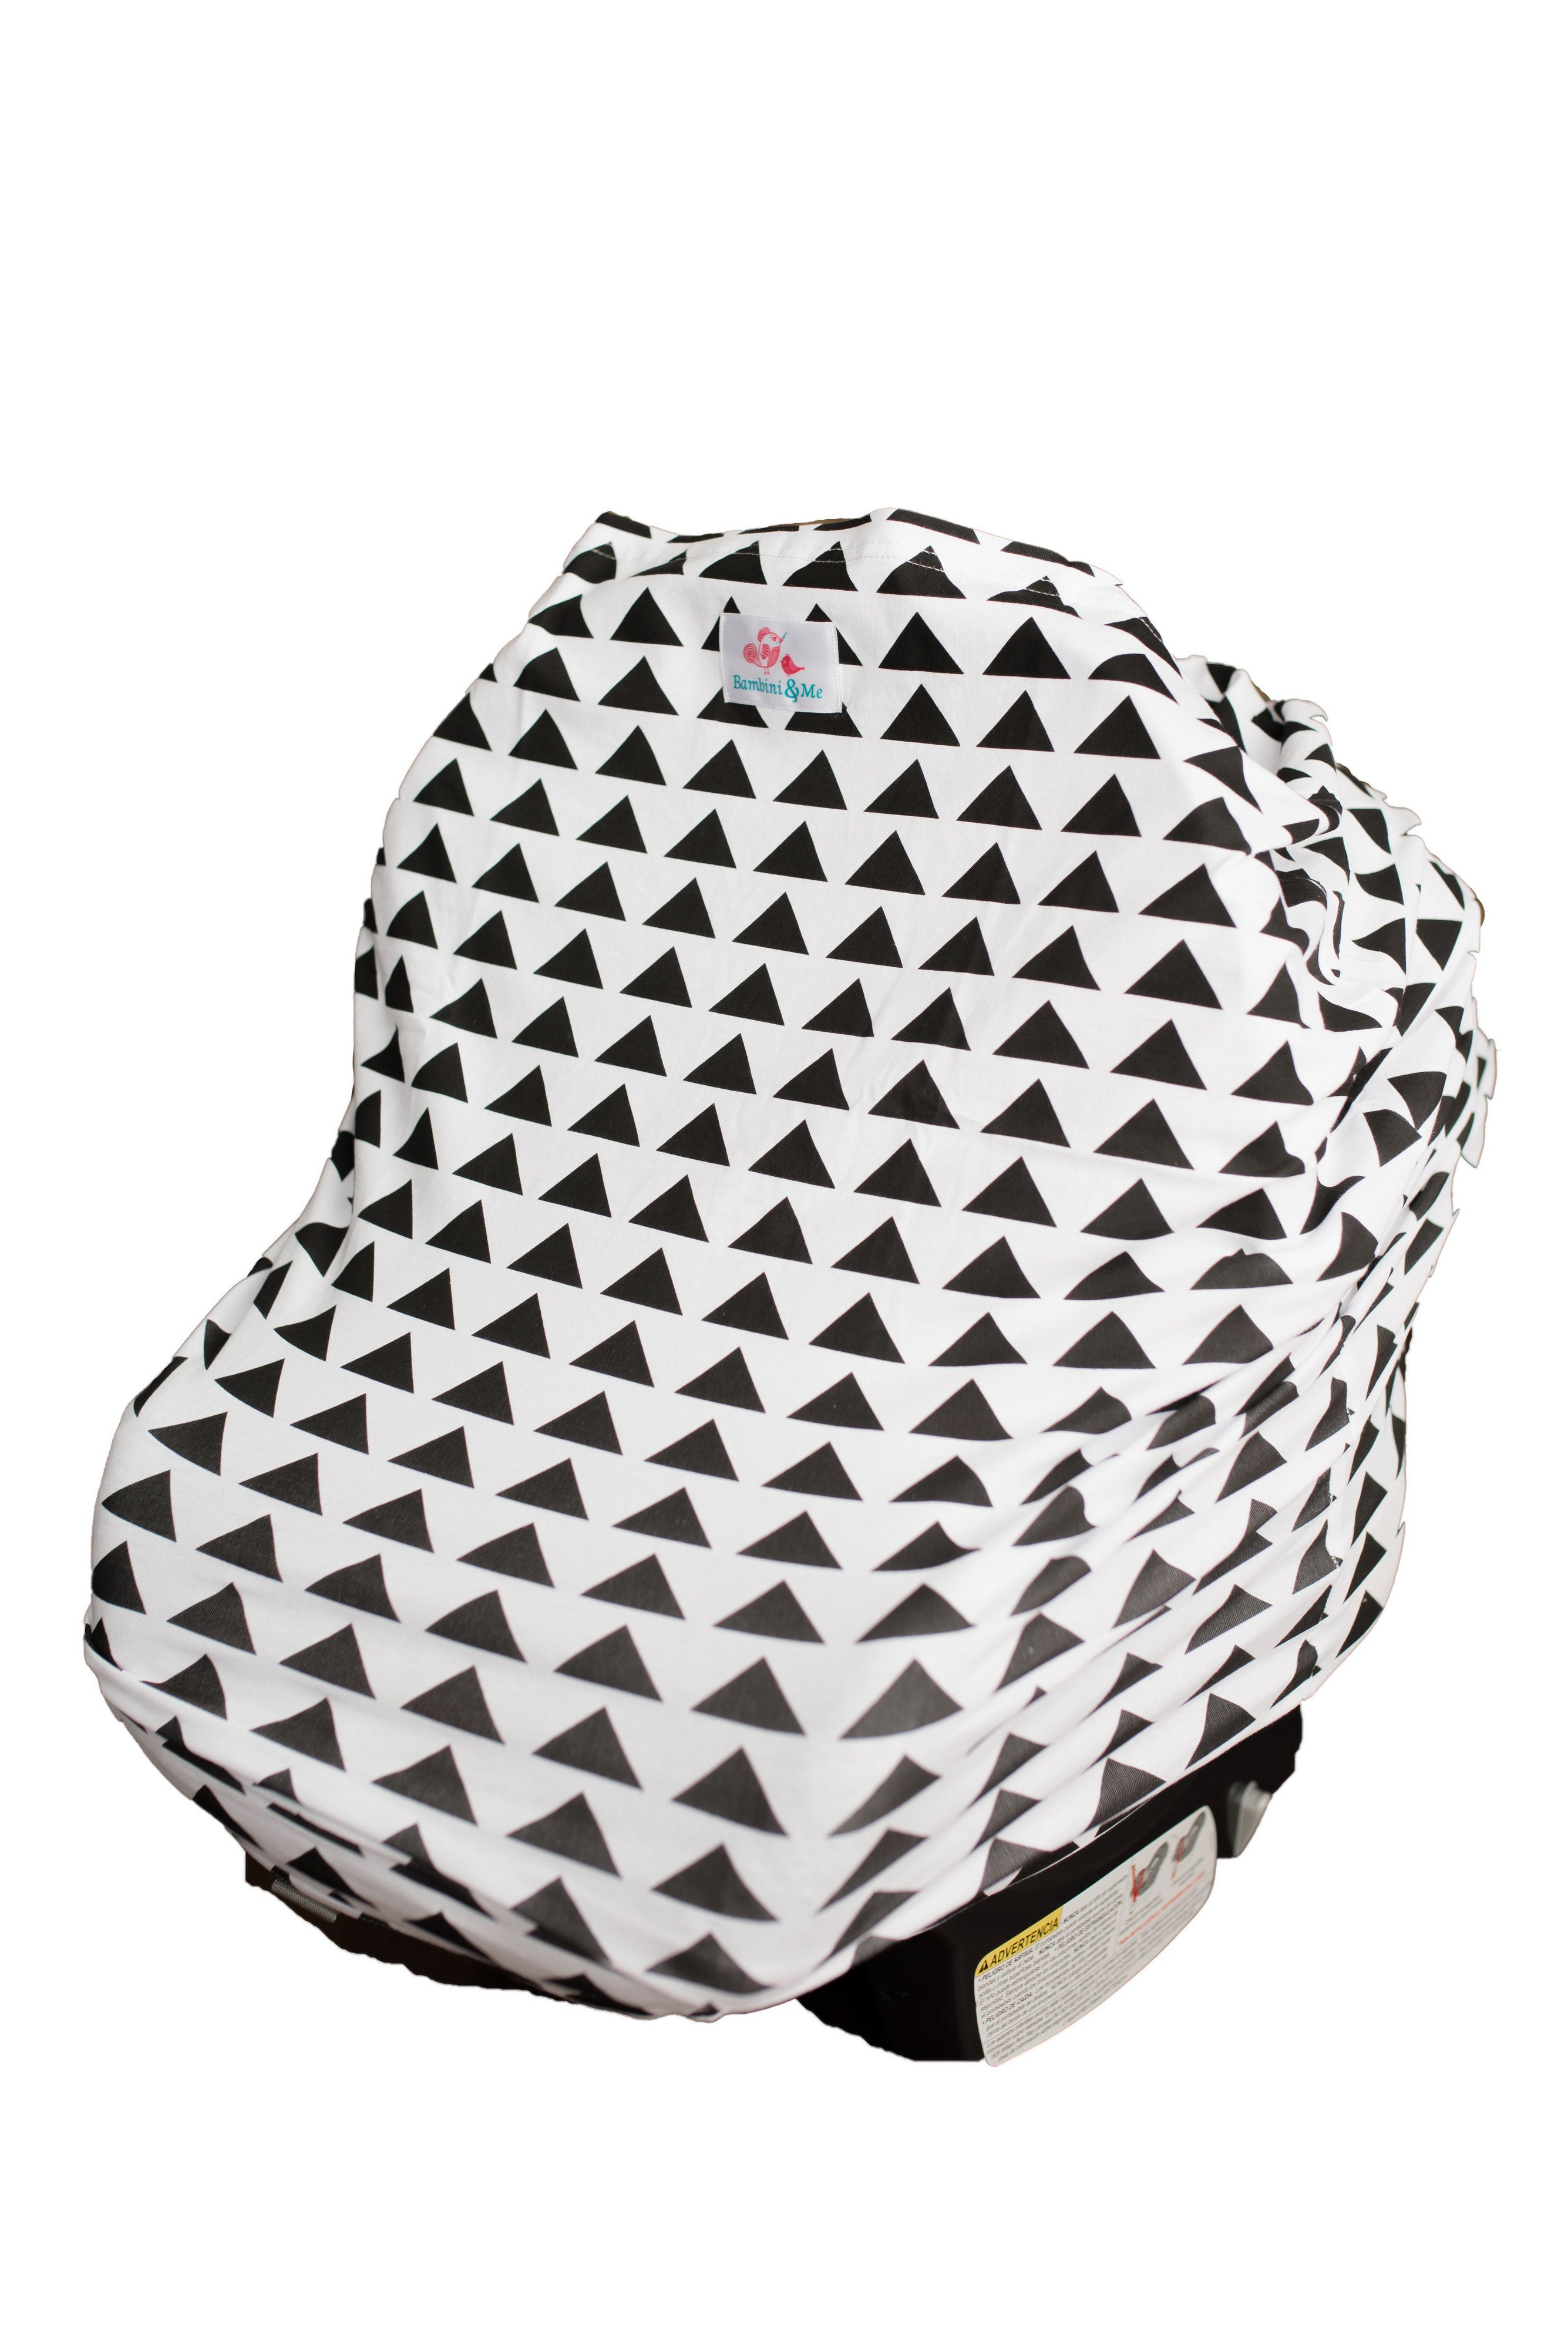 Bambini me 4in1 car seat cover fabric canopy infant